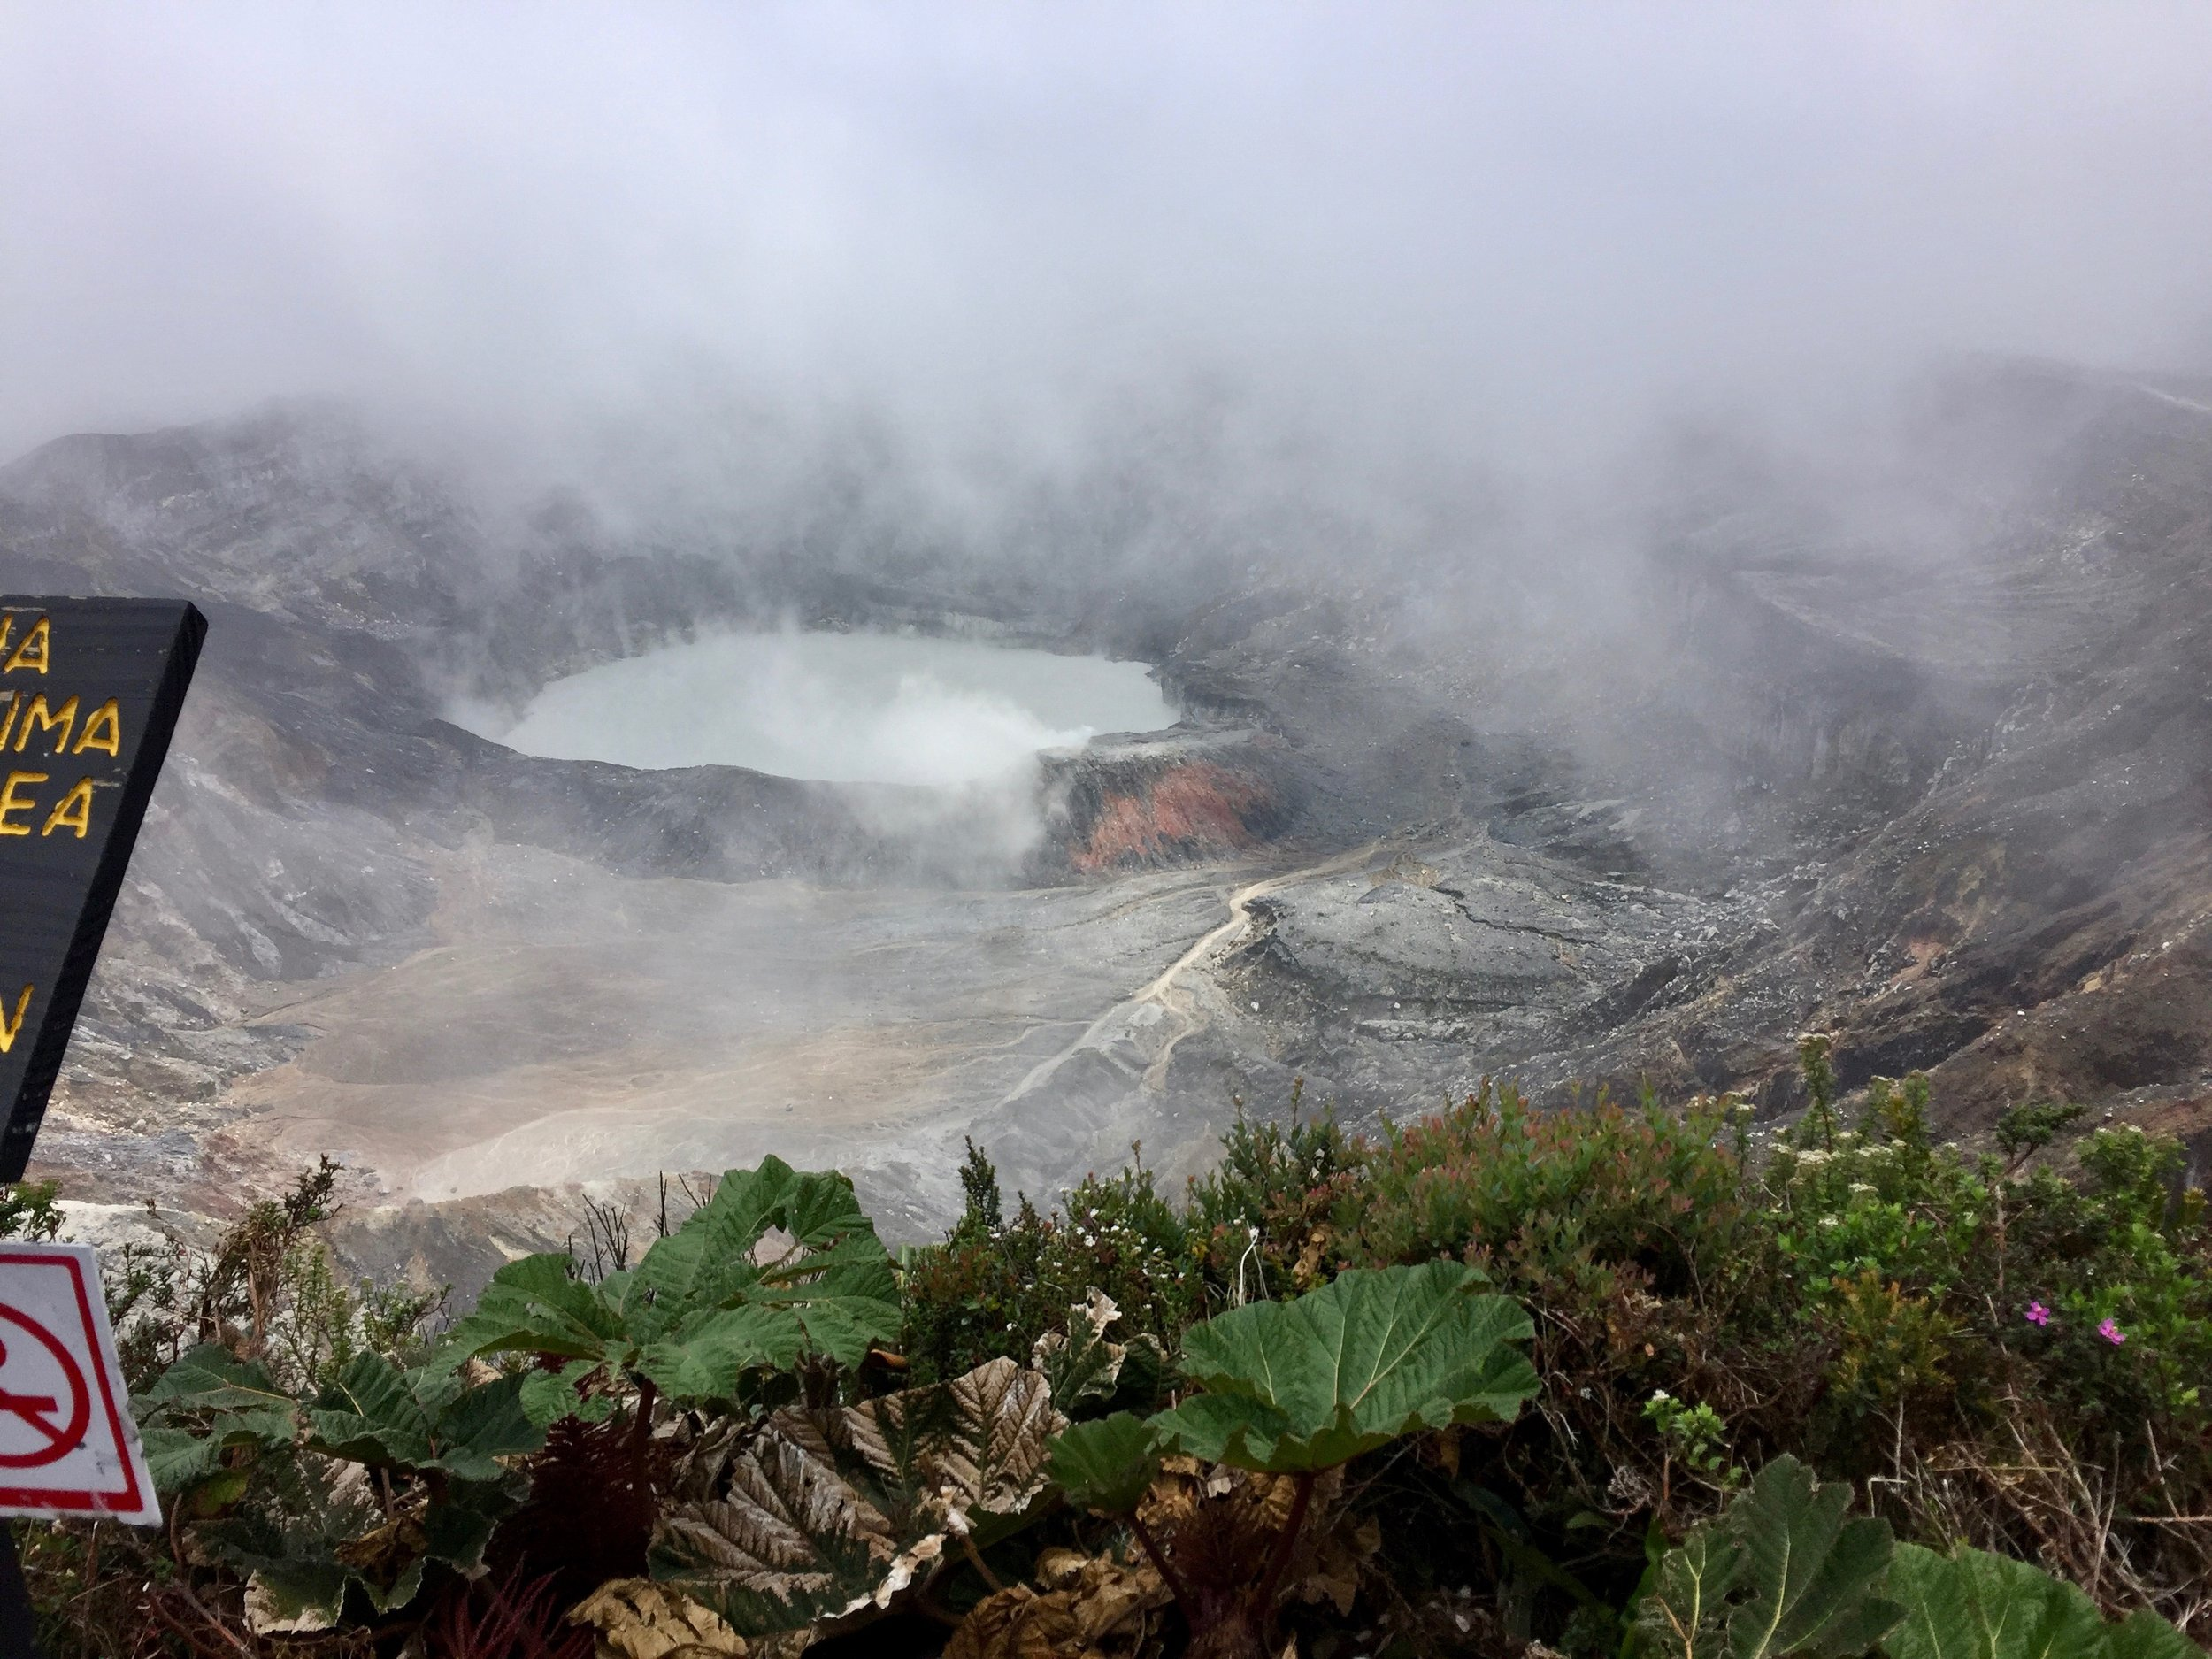 We had to include this shot looking down into the volcano at Poas since we had waited close to an hour for the clouds to lift.